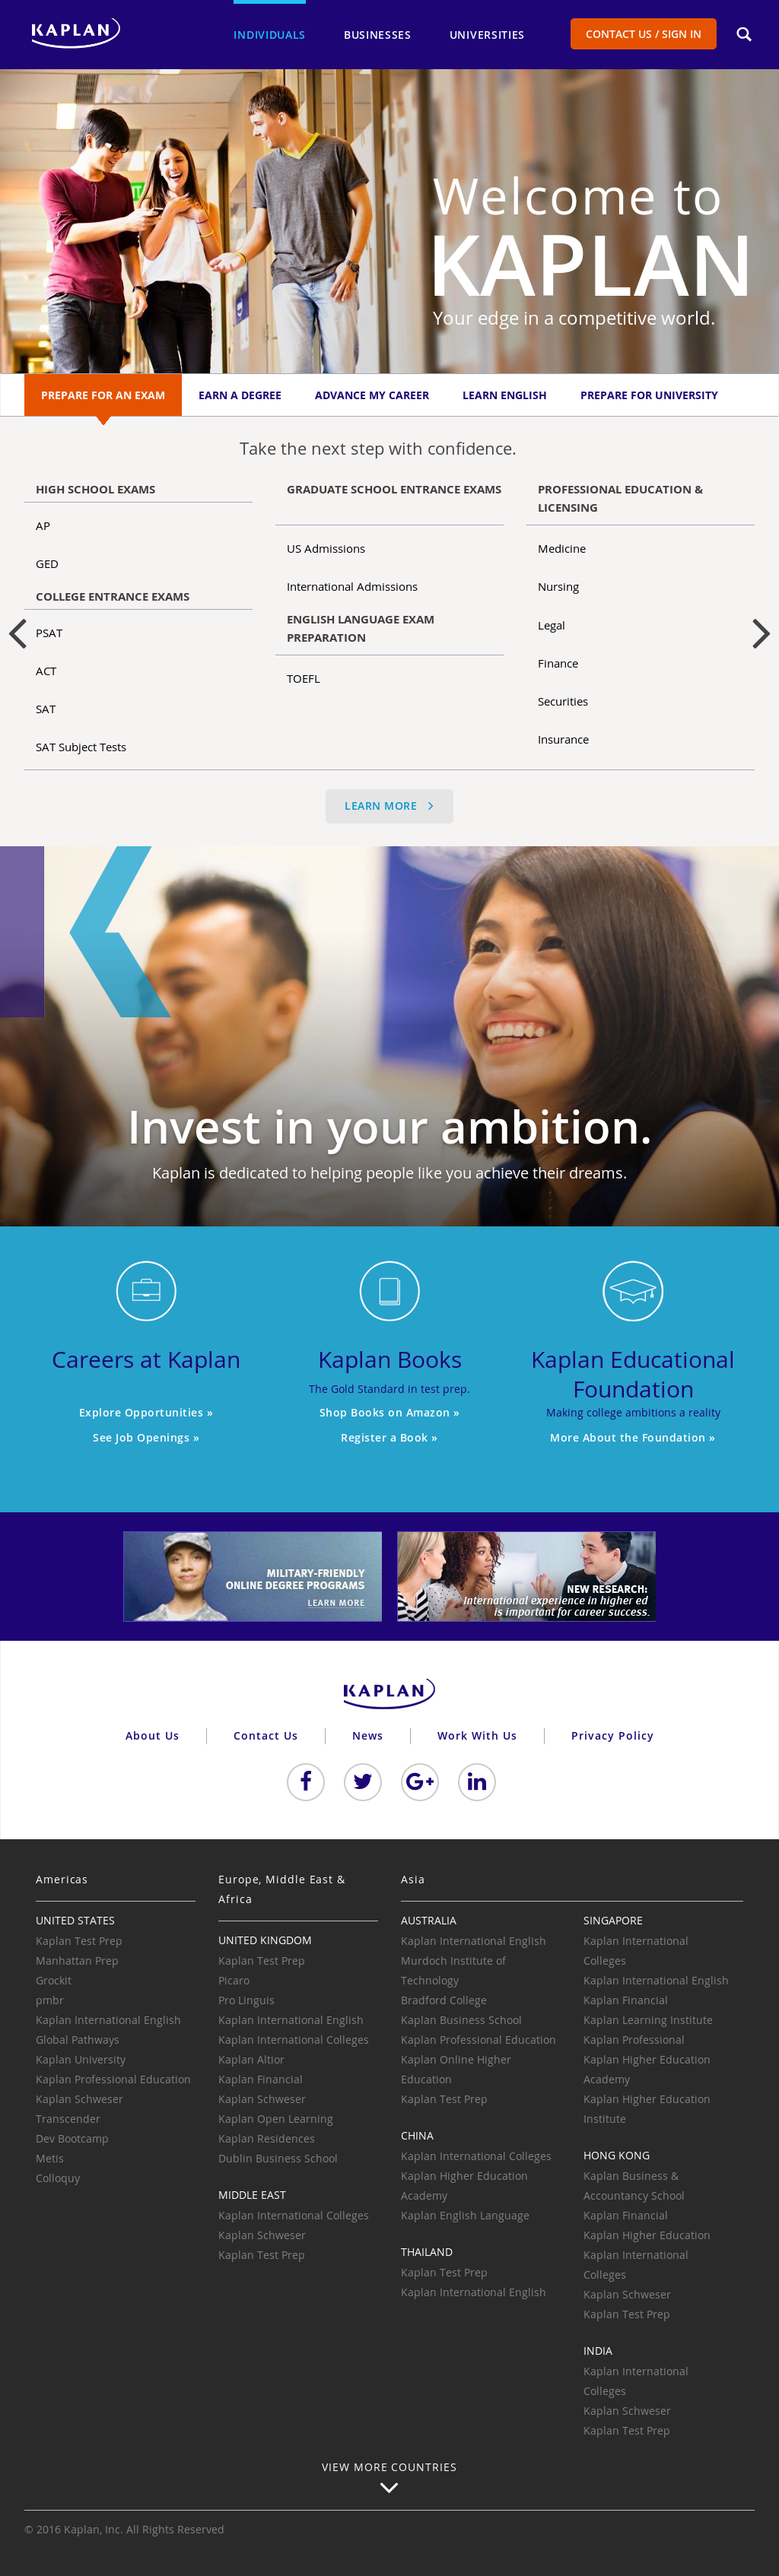 Kaplan Competitors, Revenue and Employees - Owler Company Profile